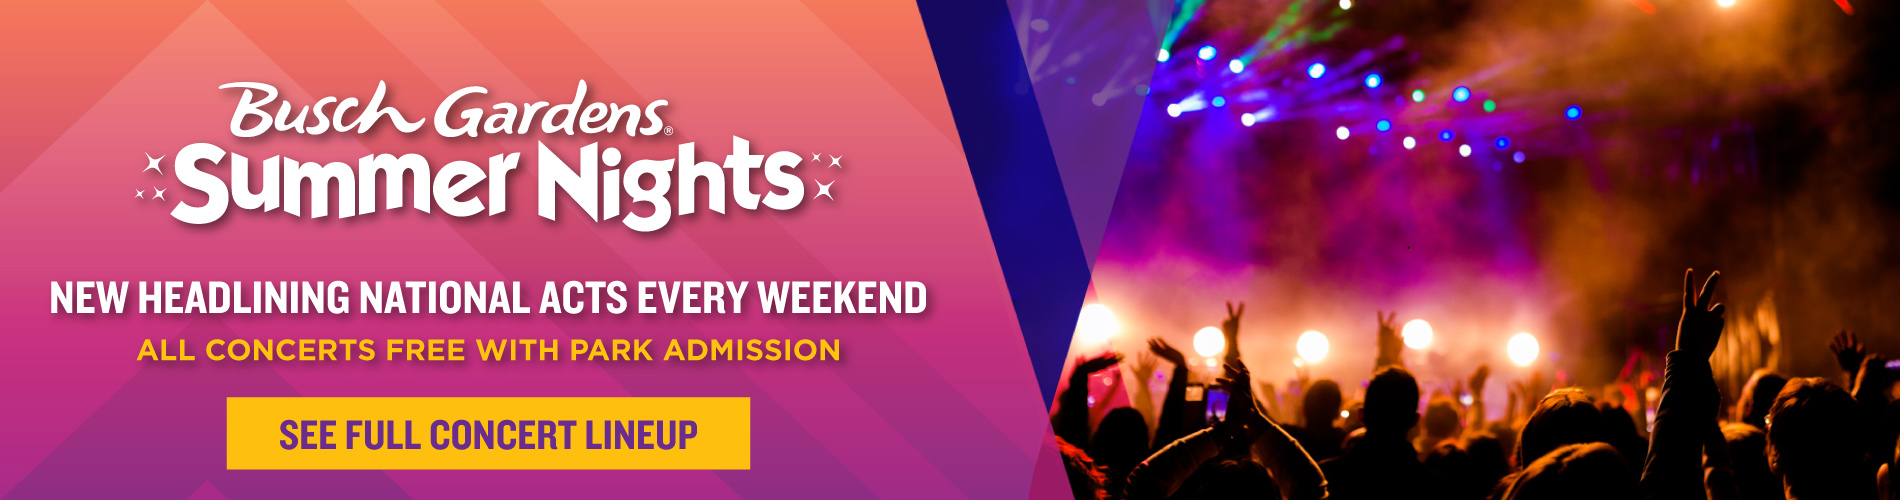 Headlining National Acts Every Weekend During Summer Nights